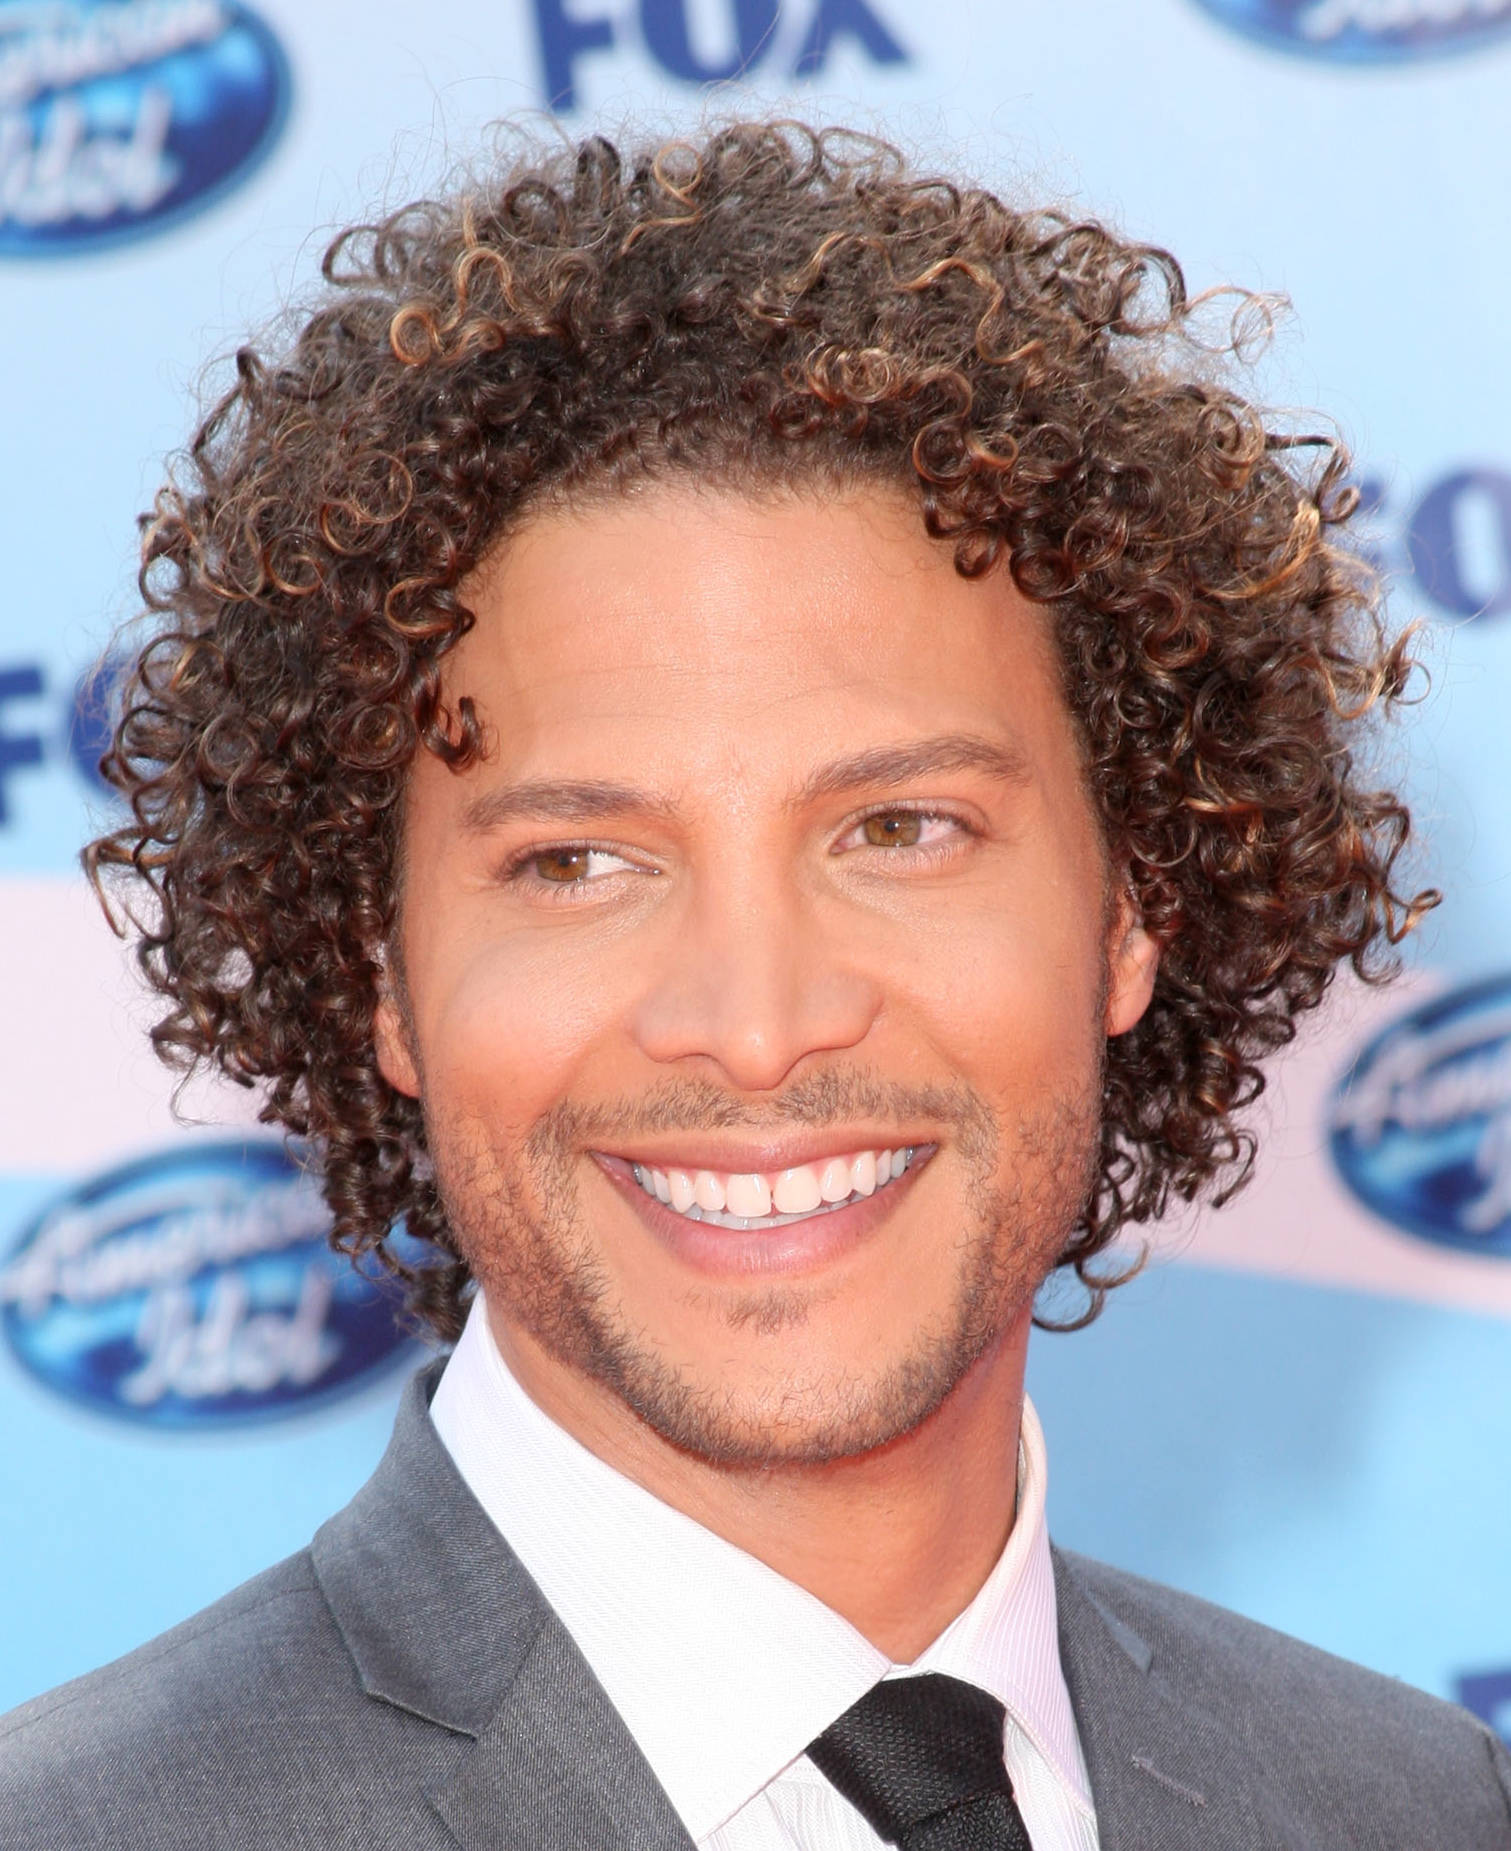 justin guarini kelly clarkson timeless скачатьjustin guarini kelly clarkson timeless, justin guarini if you wanna, justin guarini song, justin guarini kelly clarkson timeless скачать, justin guarini timeless, justin guarini and kelly clarkson, justin guarini & kelly clarkson timeless lyrics, justin guarini unchained melody, justin guarini timeless mp3, justin guarini, justin guarini 2015, justin guarini now, justin guarini 2014, justin guarini youtube, justin guarini timeless перевод песни, justin guarini timeless lyrics, justin guarini net worth, justin guarini dr pepper, justin guarini wife, justin guarini commercial